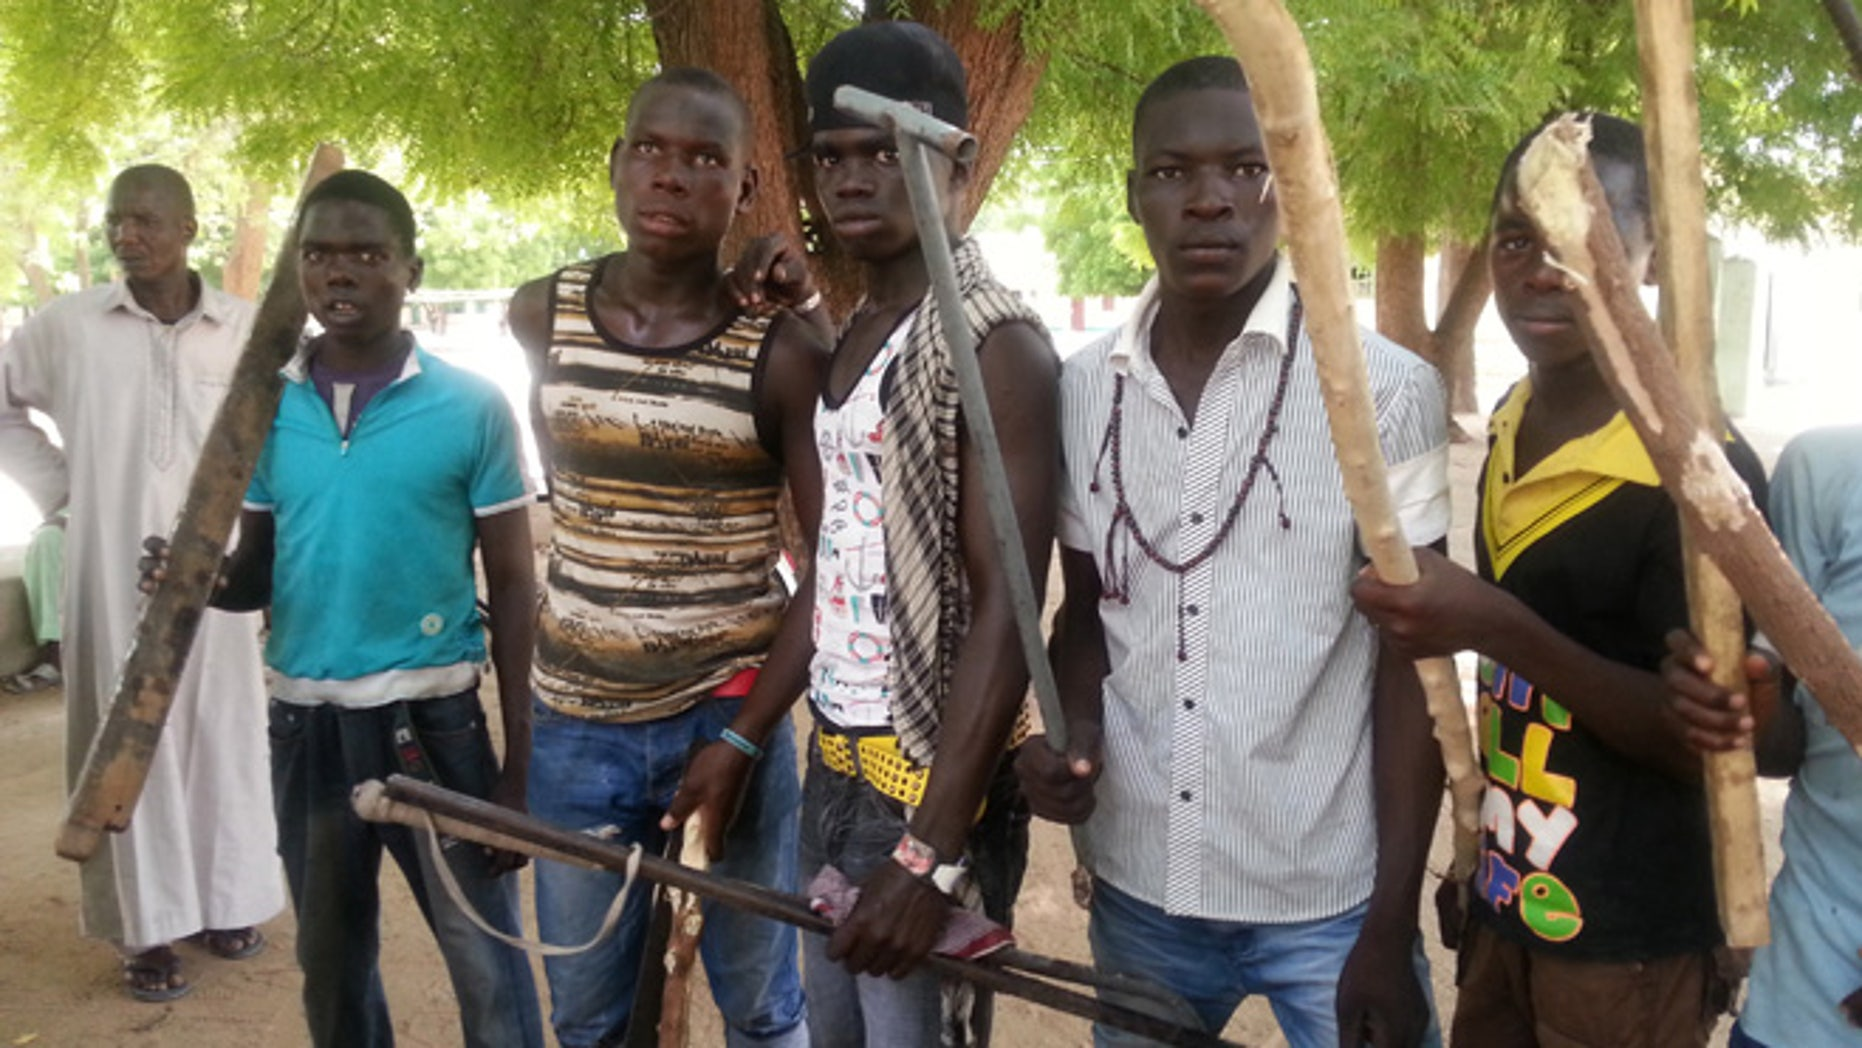 June 11, 2013: In this photo taken with a mobile phone, vigilante youths pose for a photographs in Maiduguri, Nigeria. As soldiers continue an offensive against radical Islamic extremists in northeast Nigeria, young men armed with machetes and sticks have now entered the streets of the regions biggest city, targeting suspected fighters. The members of the Civilian JTF, a play off the acronym used to describe the joint military and police taskforce in the region, already have come under attack from extremists for pointing out suspects to soldiers. However, it remains unclear what happens to those the group points out, as some suspects in Maiduguri have already been shot dead by security forces and left rotting in ditches in the city.